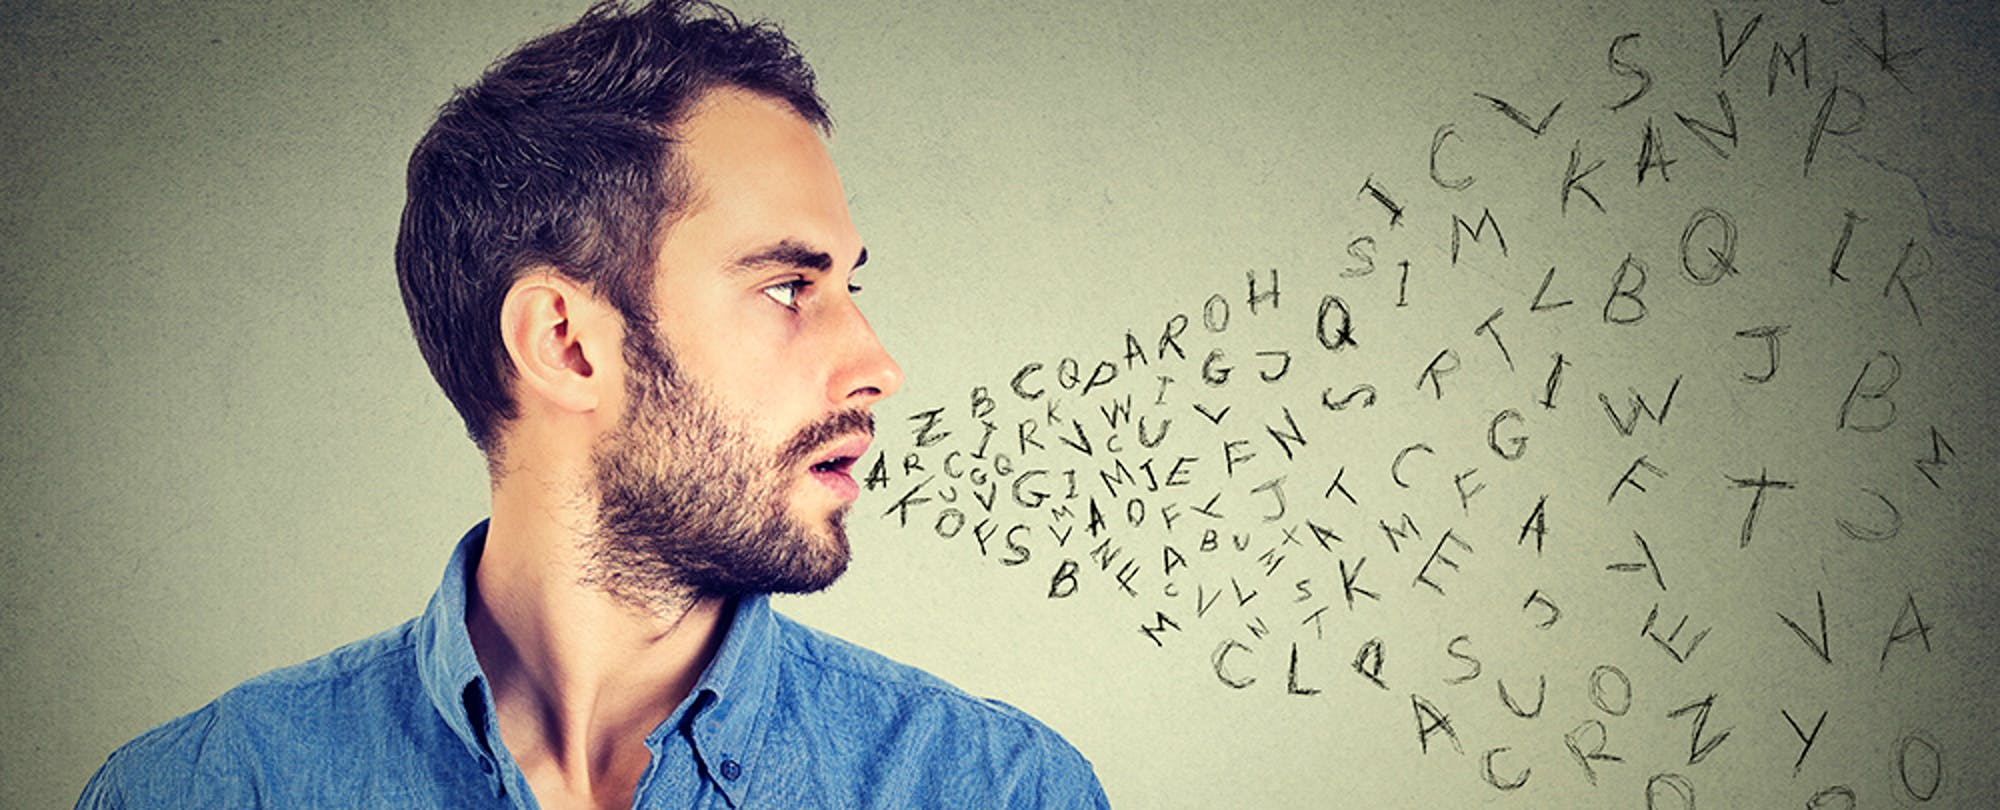 'It's Personalized, Online, and Blended': How to Make Edtech Buzzwords Substantive